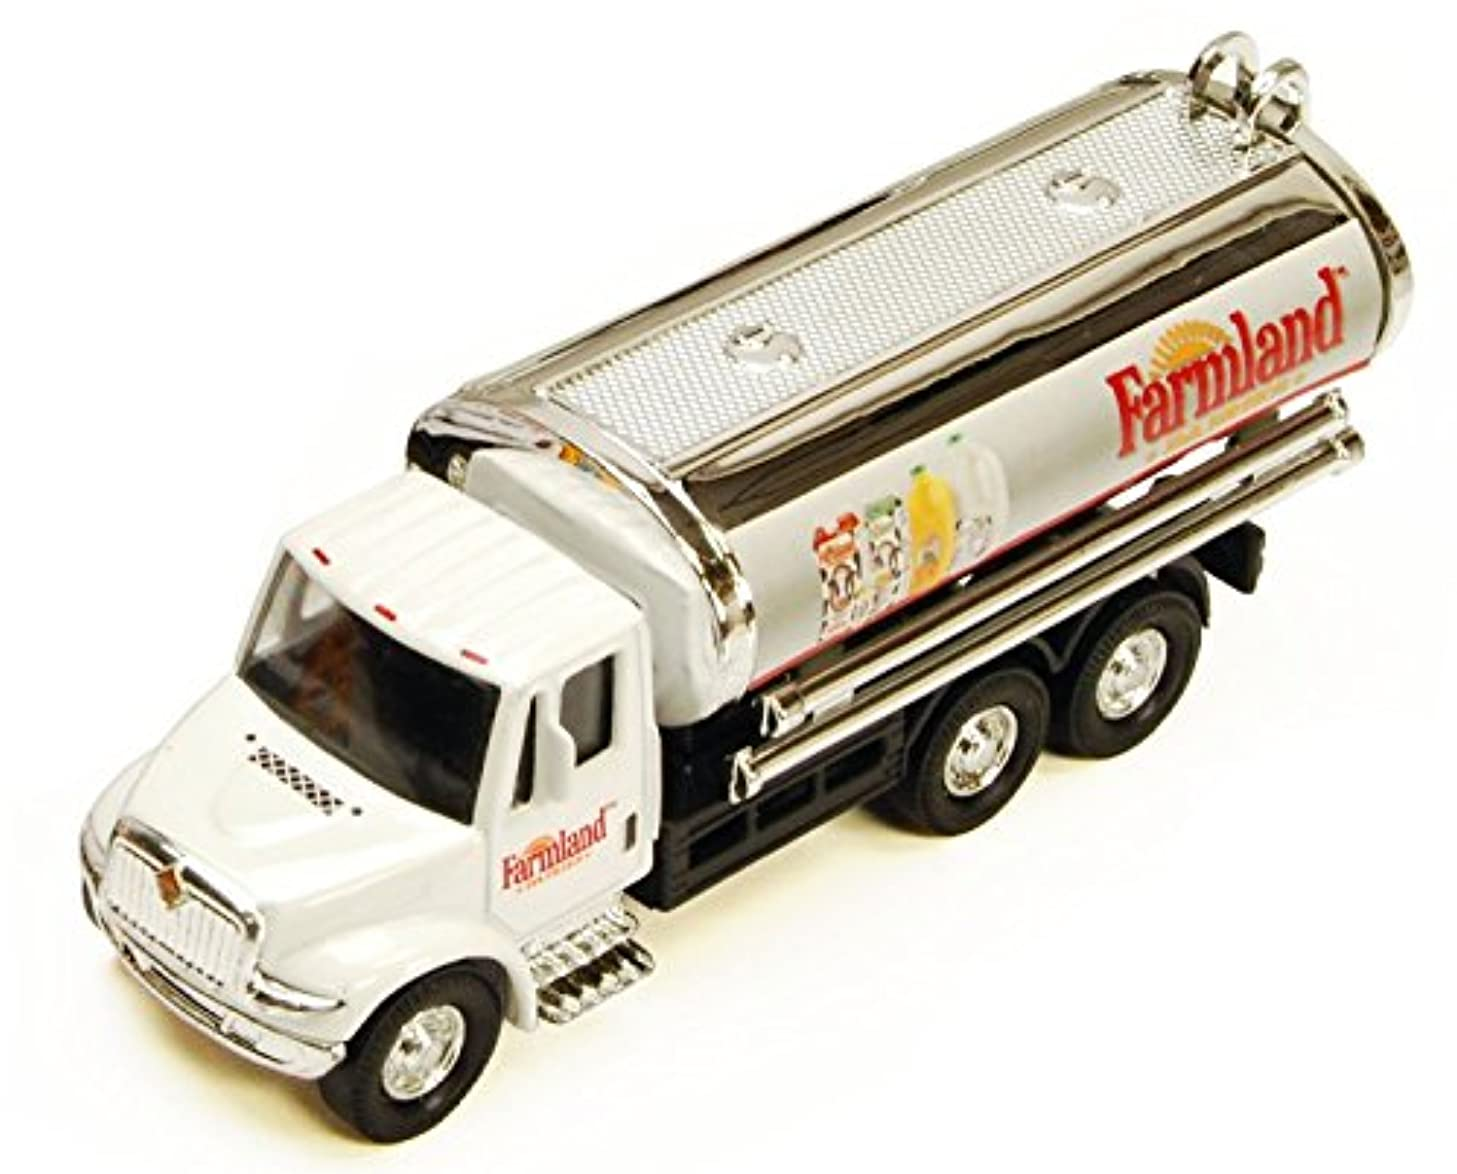 Farmland International Dairy 5?-inch Tanker Truck with Pullback Motorized Action 1/55 Scale